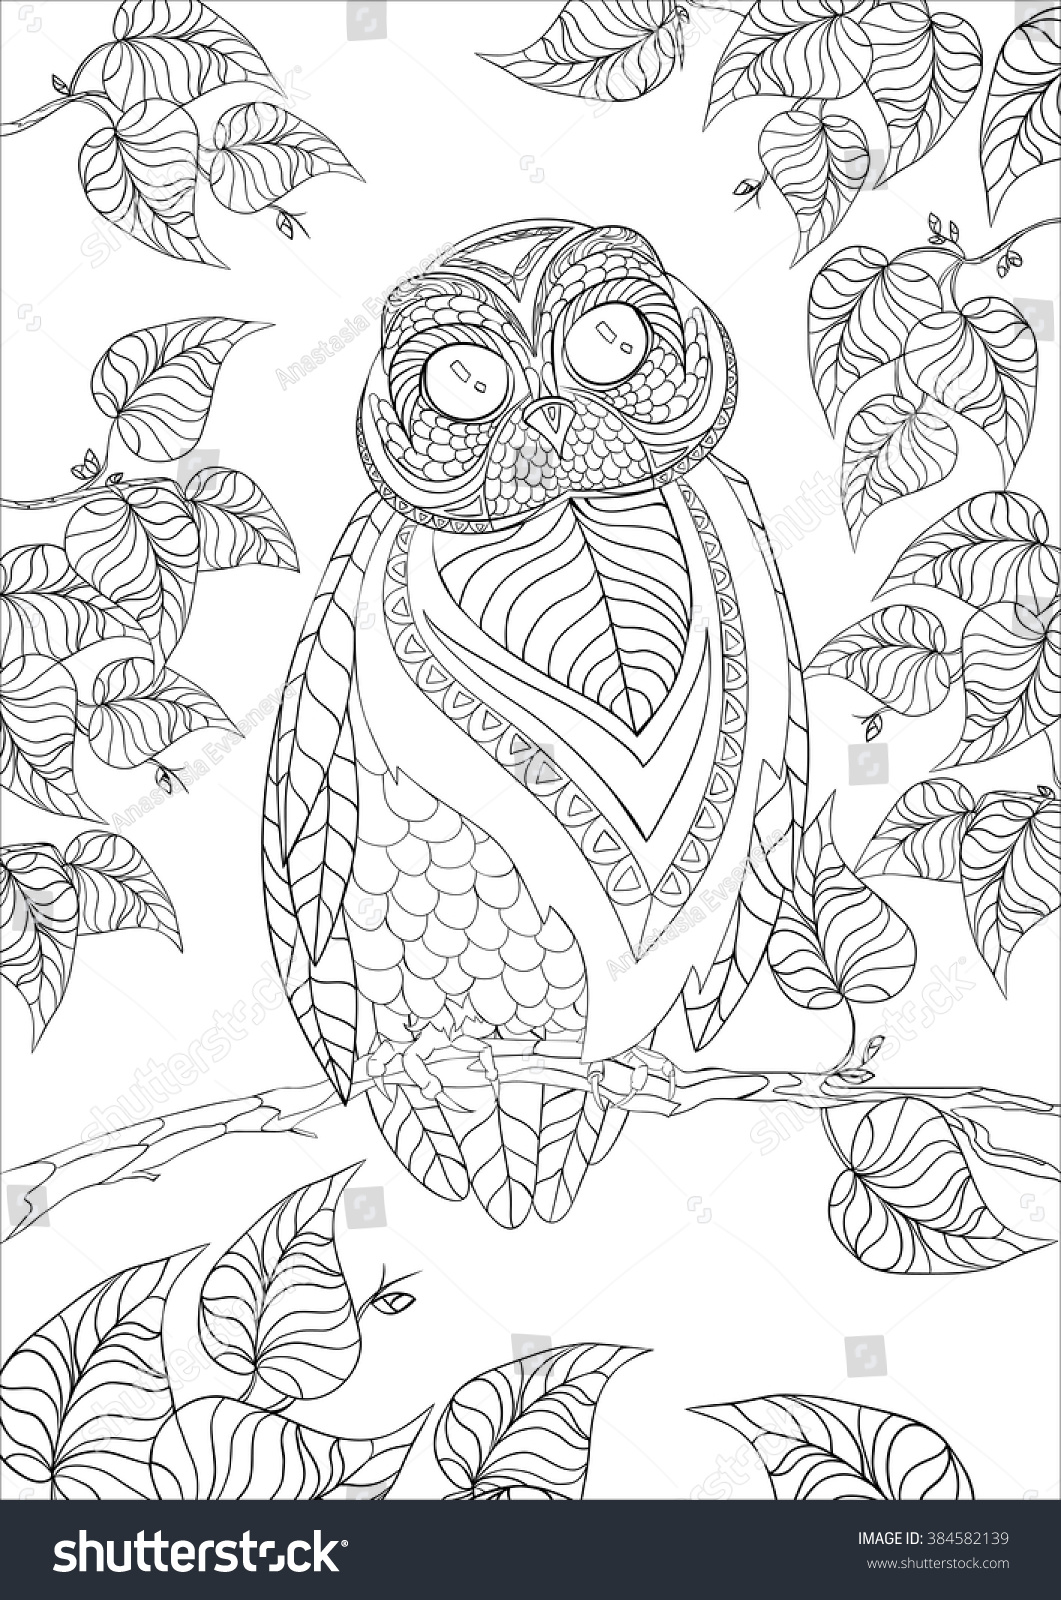 A4 Vector Monochrome Zentangle Stylized Abstract Owl On A Tree Branch With Leaves And Flora Art Color Therapy Anti Stress An Antistress Coloring Book